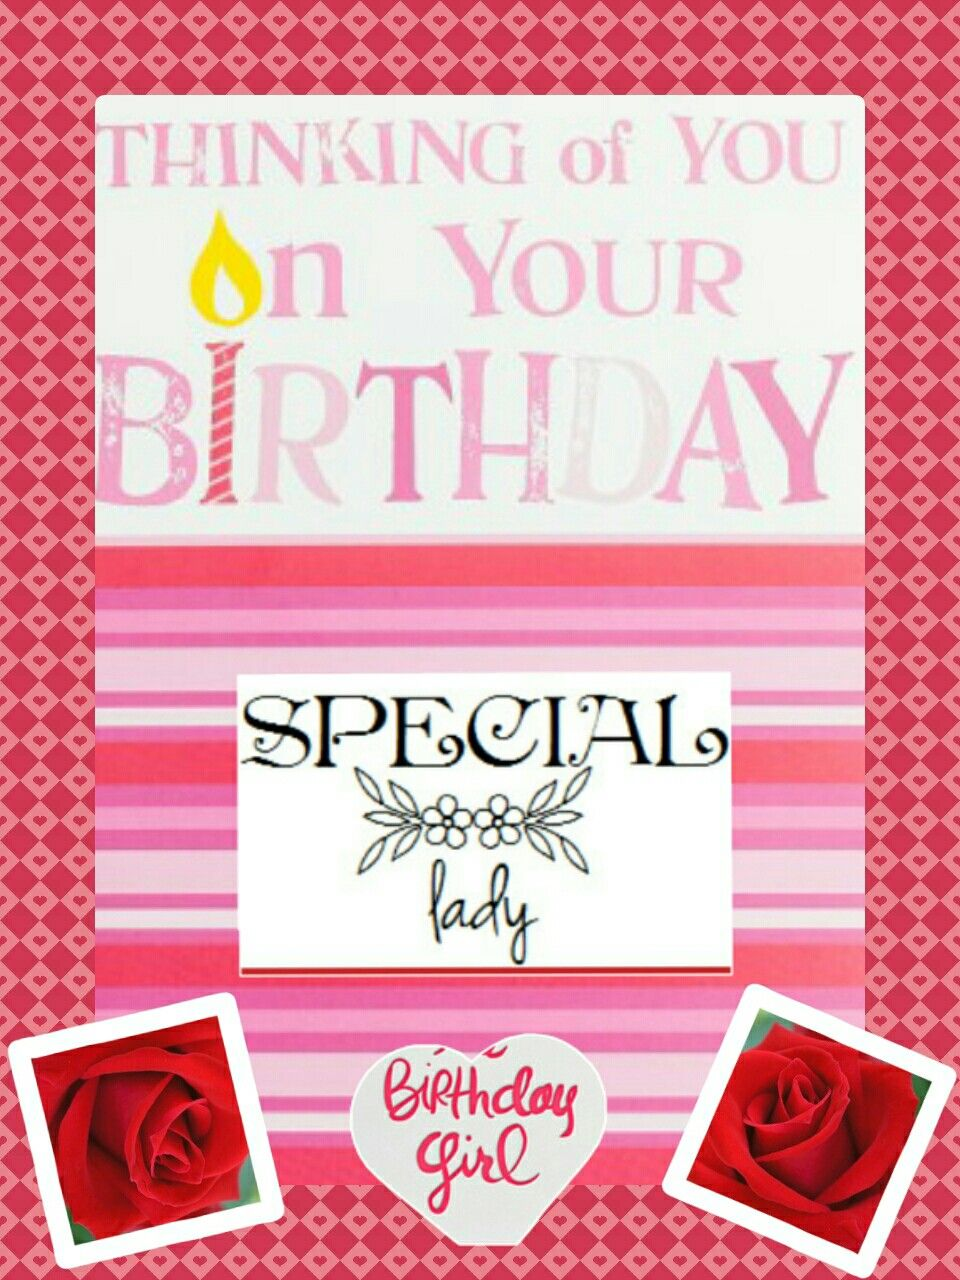 Modern Lady Lady Happy Birthday Pinterest Happy Birthday Happy Birthday To A Lady Quotes Happy Birthday To A Very Lady Images